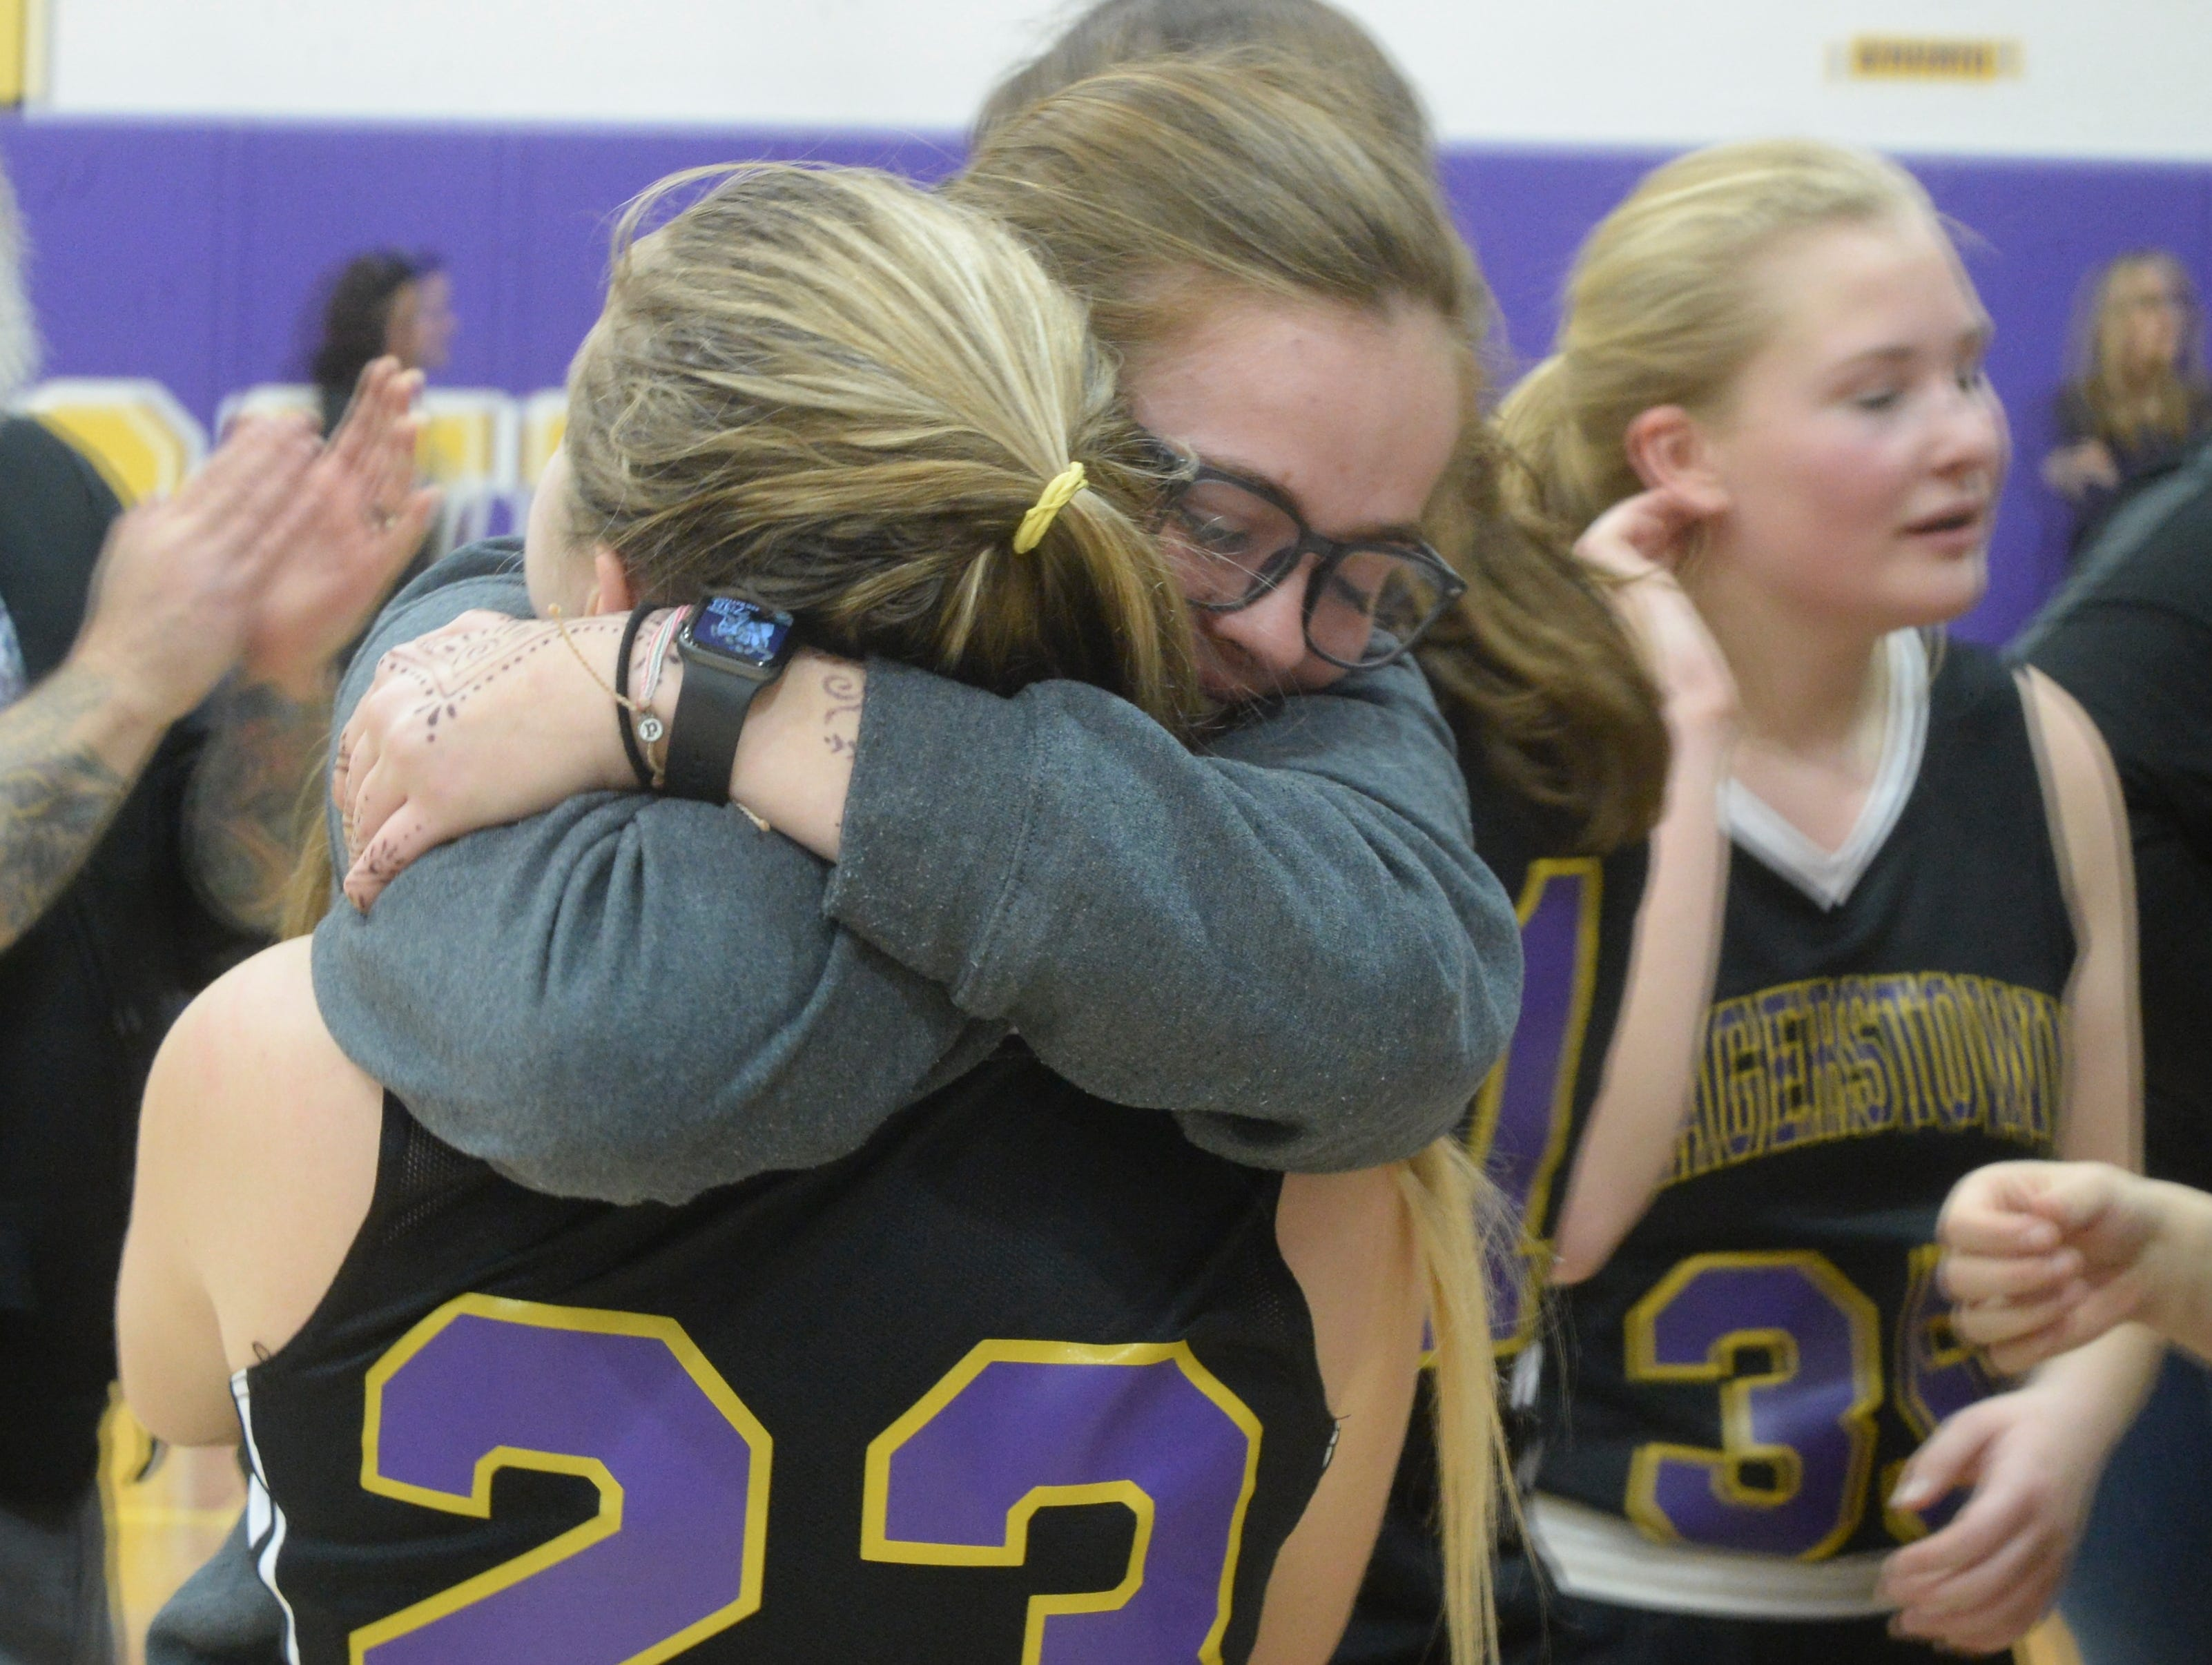 Members of Hagerstown's girls basketball team celebrate during the Wayne County girls basketball championship at Hagerstown Saturday, Jan. 5, 2019. Hagerstown defeated Northeastern 37-35 to win the girls' title, and Northeastern beat Hagerstown 60-49 in the boys championship.